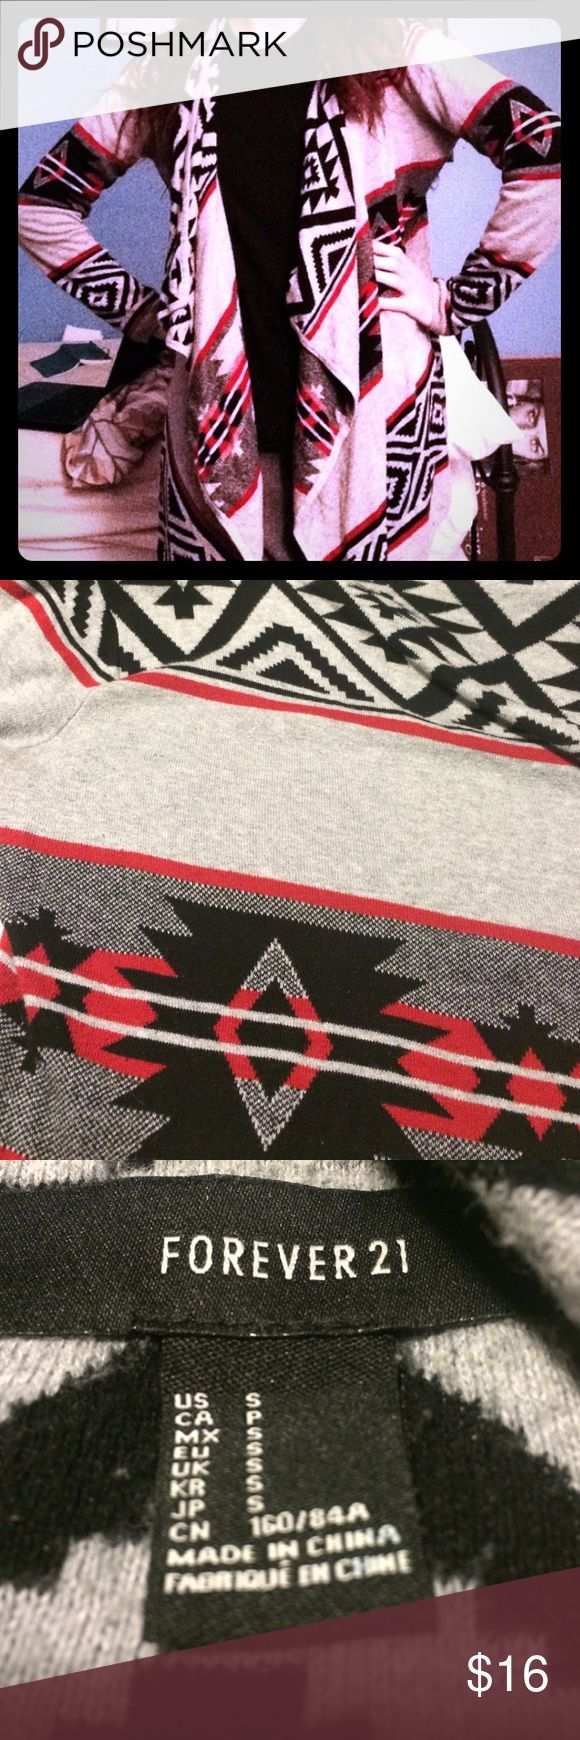 Aztec comfy open sweater Trendy Aztec print sweater. Open cardigan style with longer front opening. Super comfy and can fit sizes small and medium due to style. I wore this numerous times last season and have just grown tired of it so it needs a new home. Shows some signs of pilling but overall in good condition. You will love this cozy sweater with leggings and boots! Red black and gray. Forever 21 Sweaters